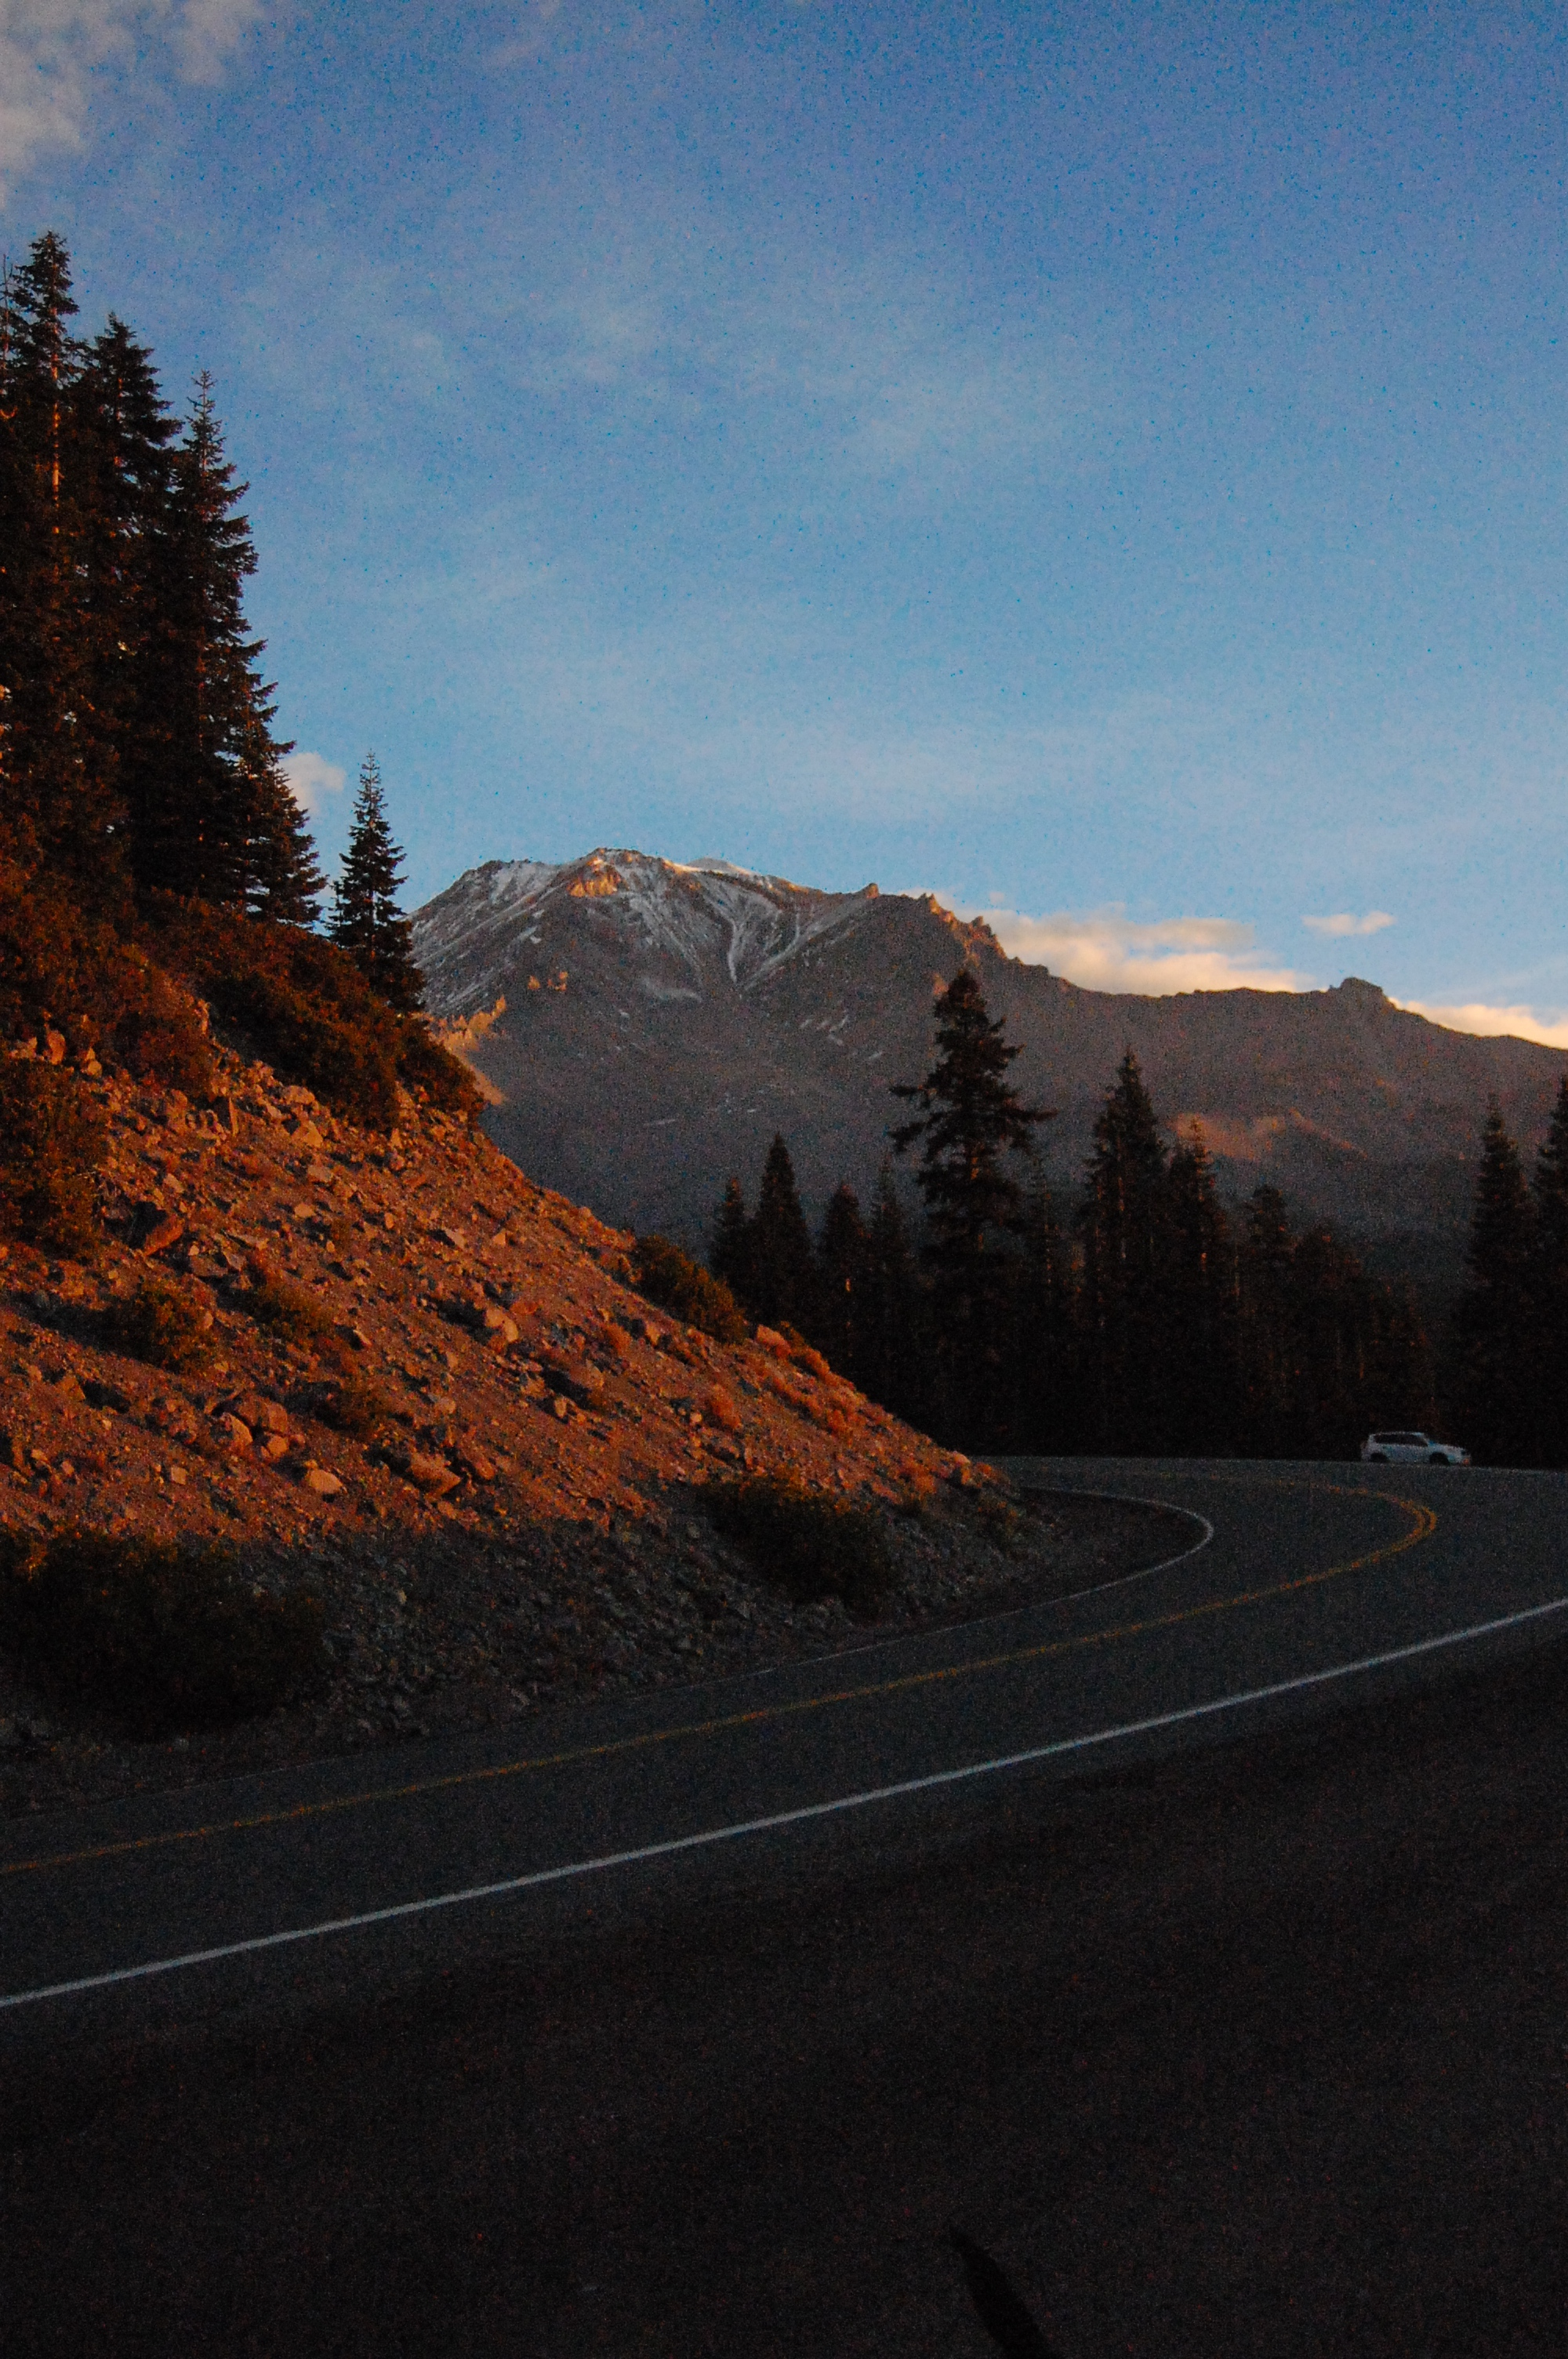 As the sun rose on Mount Shasta